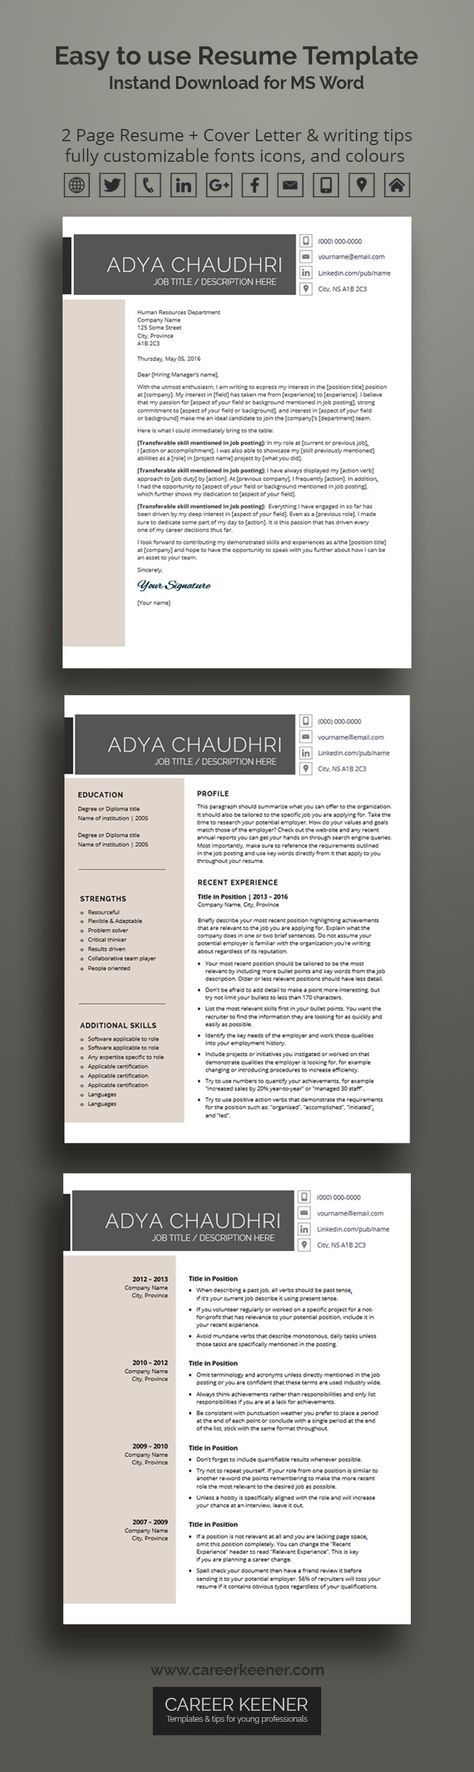 Modern Resume Template Resume + Cover Letter for MS Word Includes Writing Tips Fully Customizable Instant Download Printable A4 | Adya from Career Keener